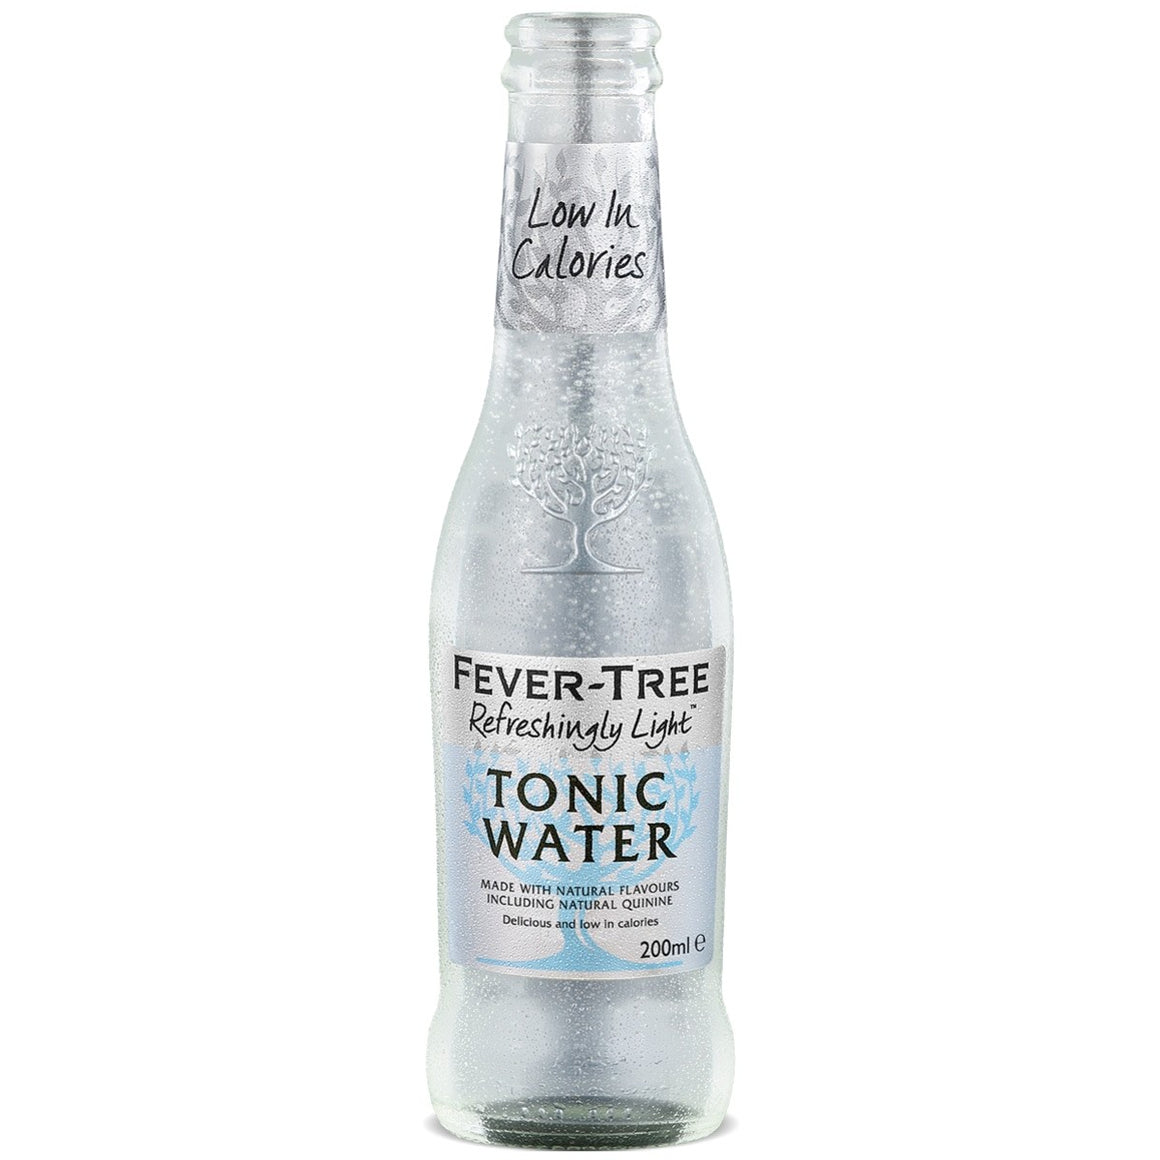 FEVER-TREE NATURALLY LIGHT TONIC WATER 200ml - Premier Cru Retail Stores